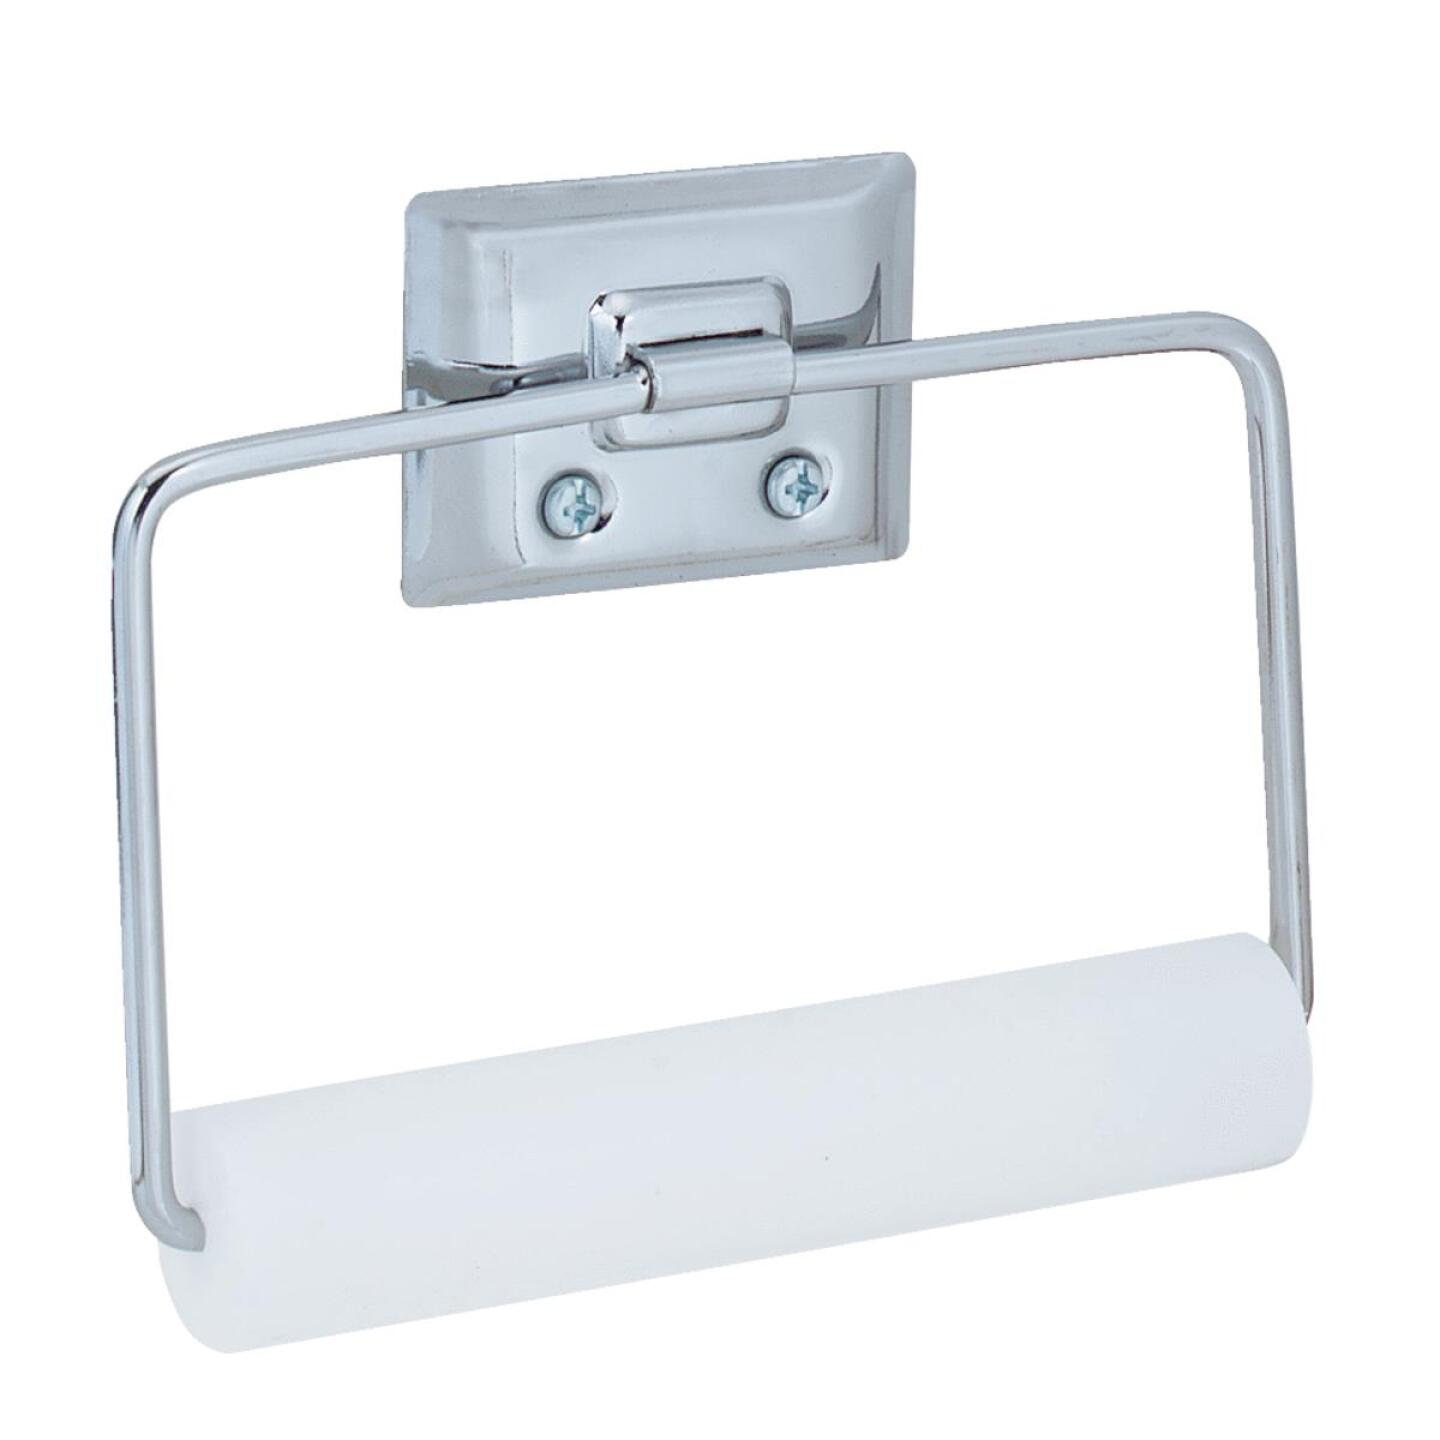 Decko Chrome Swing Type Wall Mount Toilet Paper Holder Image 1